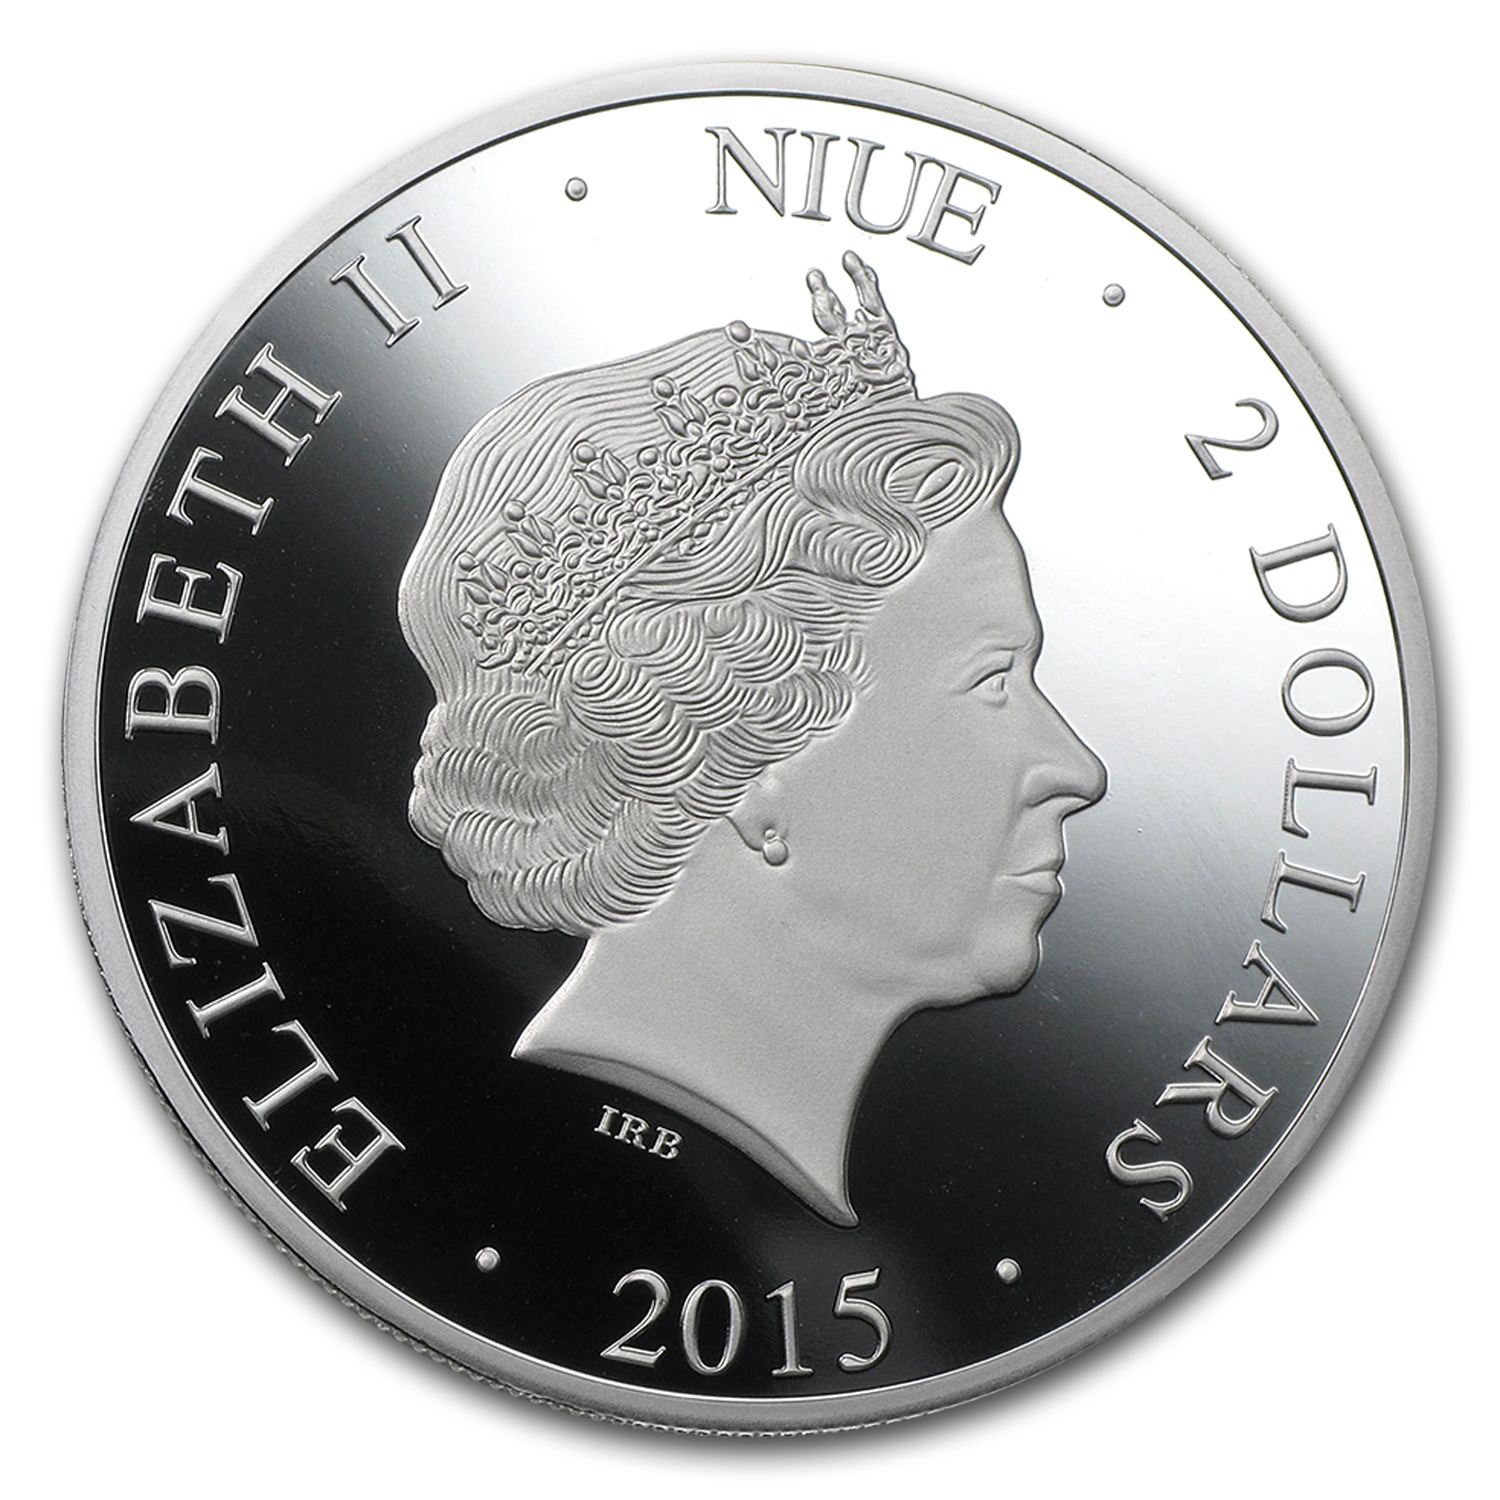 2015 Niue 1 oz Silver $2 Hologram Colosseum in Rome Proof